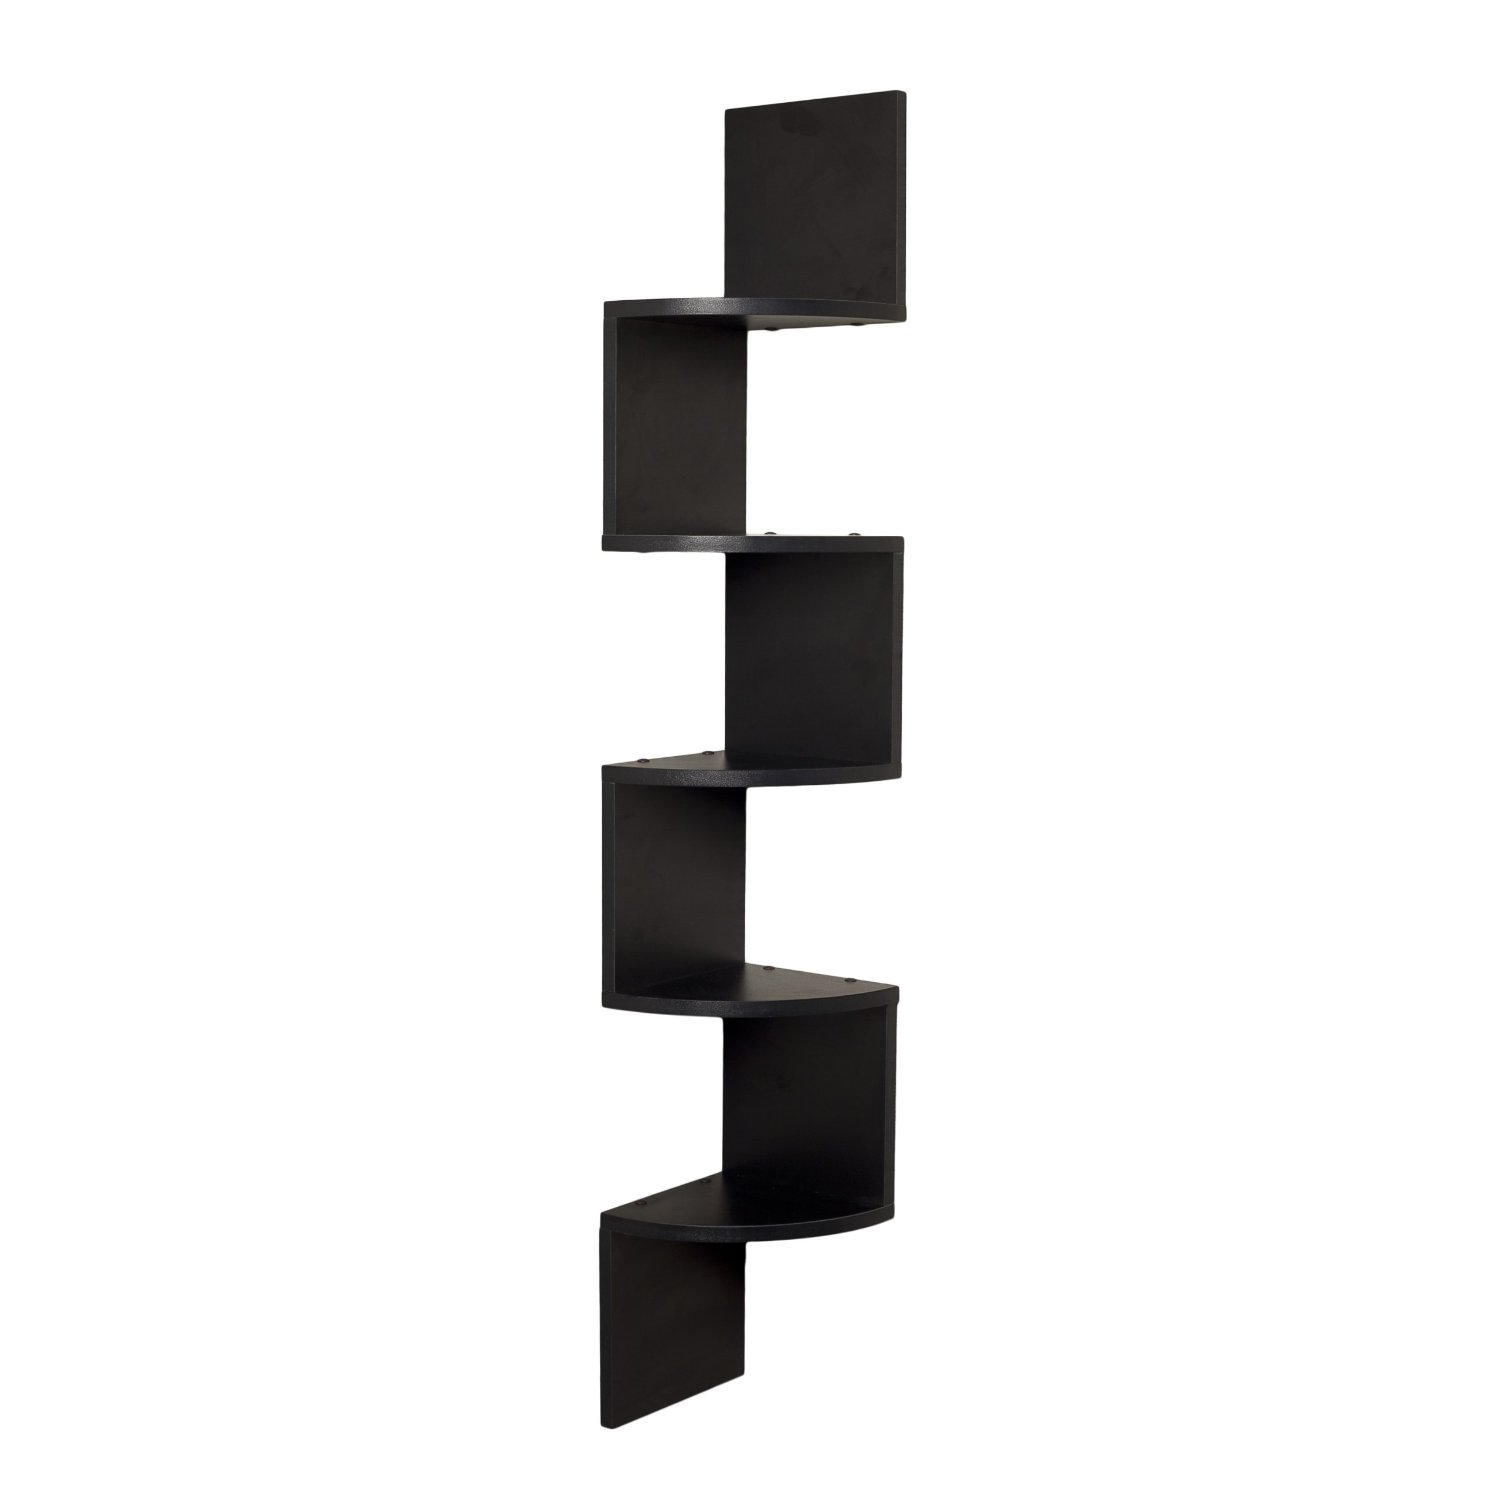 Very Impressive portraiture of Corner Wall Shelf Unit Zigzag Shape 5 Curved Shelves : Black Home  with #5E5951 color and 1500x1499 pixels